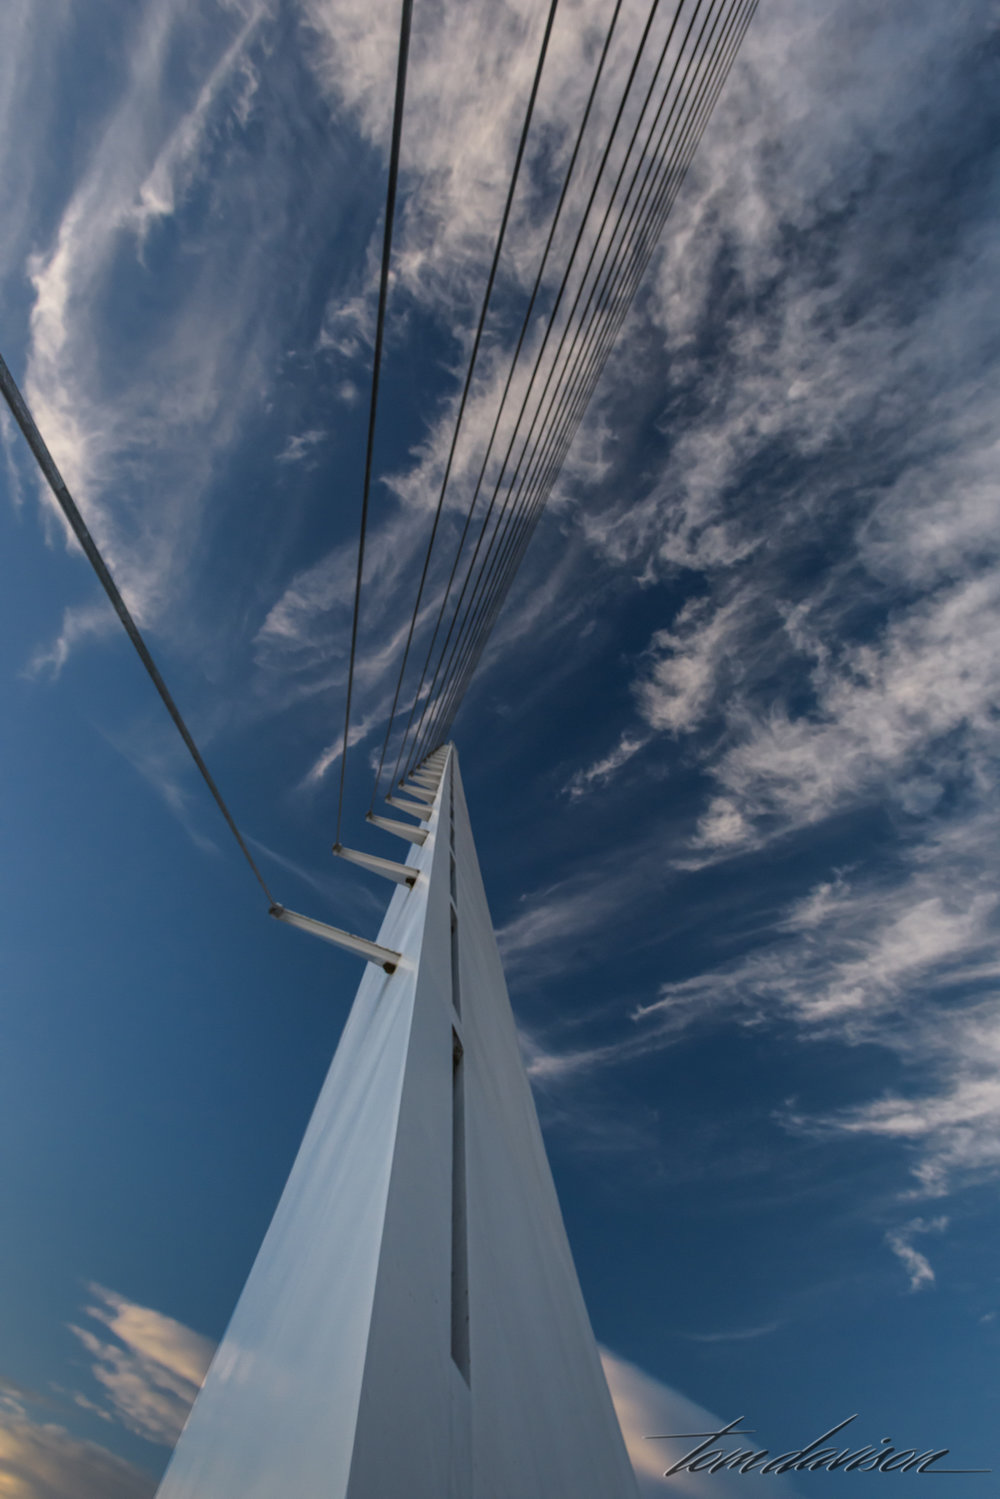 The tall pylon is 217 feet high and supports 4,300 feet of cable.